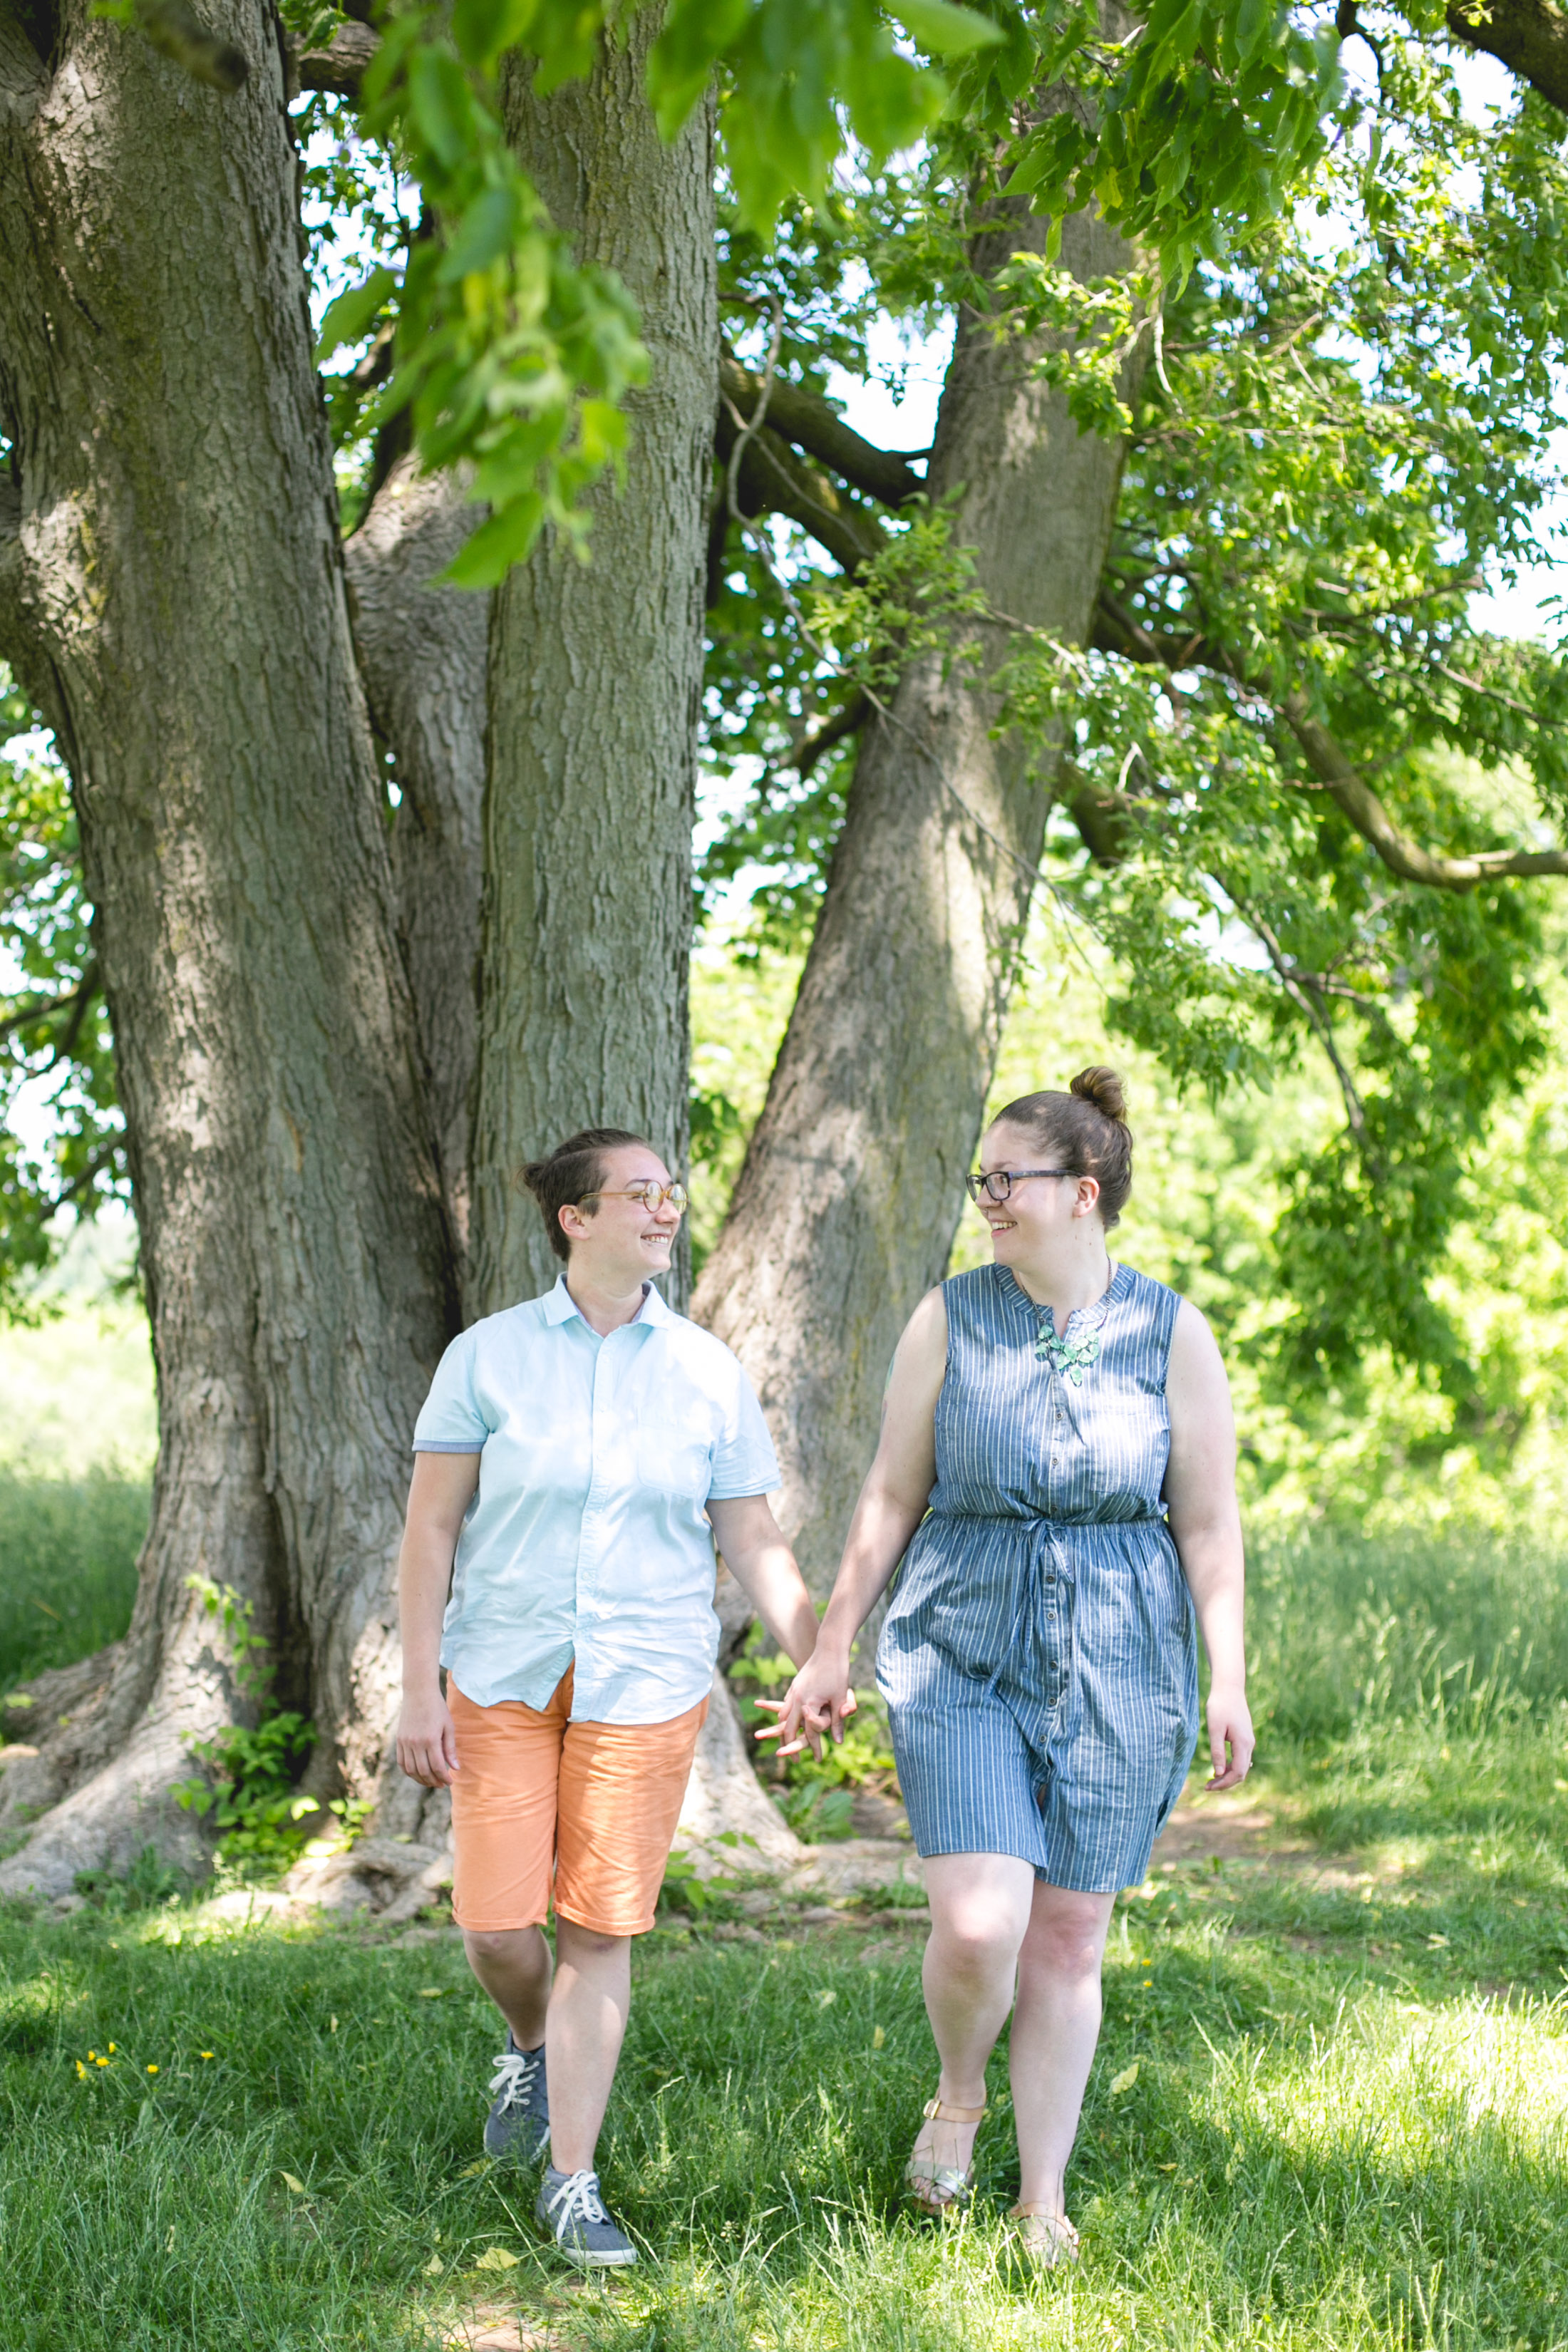 A spring Valley Forge State Park, King of Prussia Pa Queer Engagement session with Alex and Lee